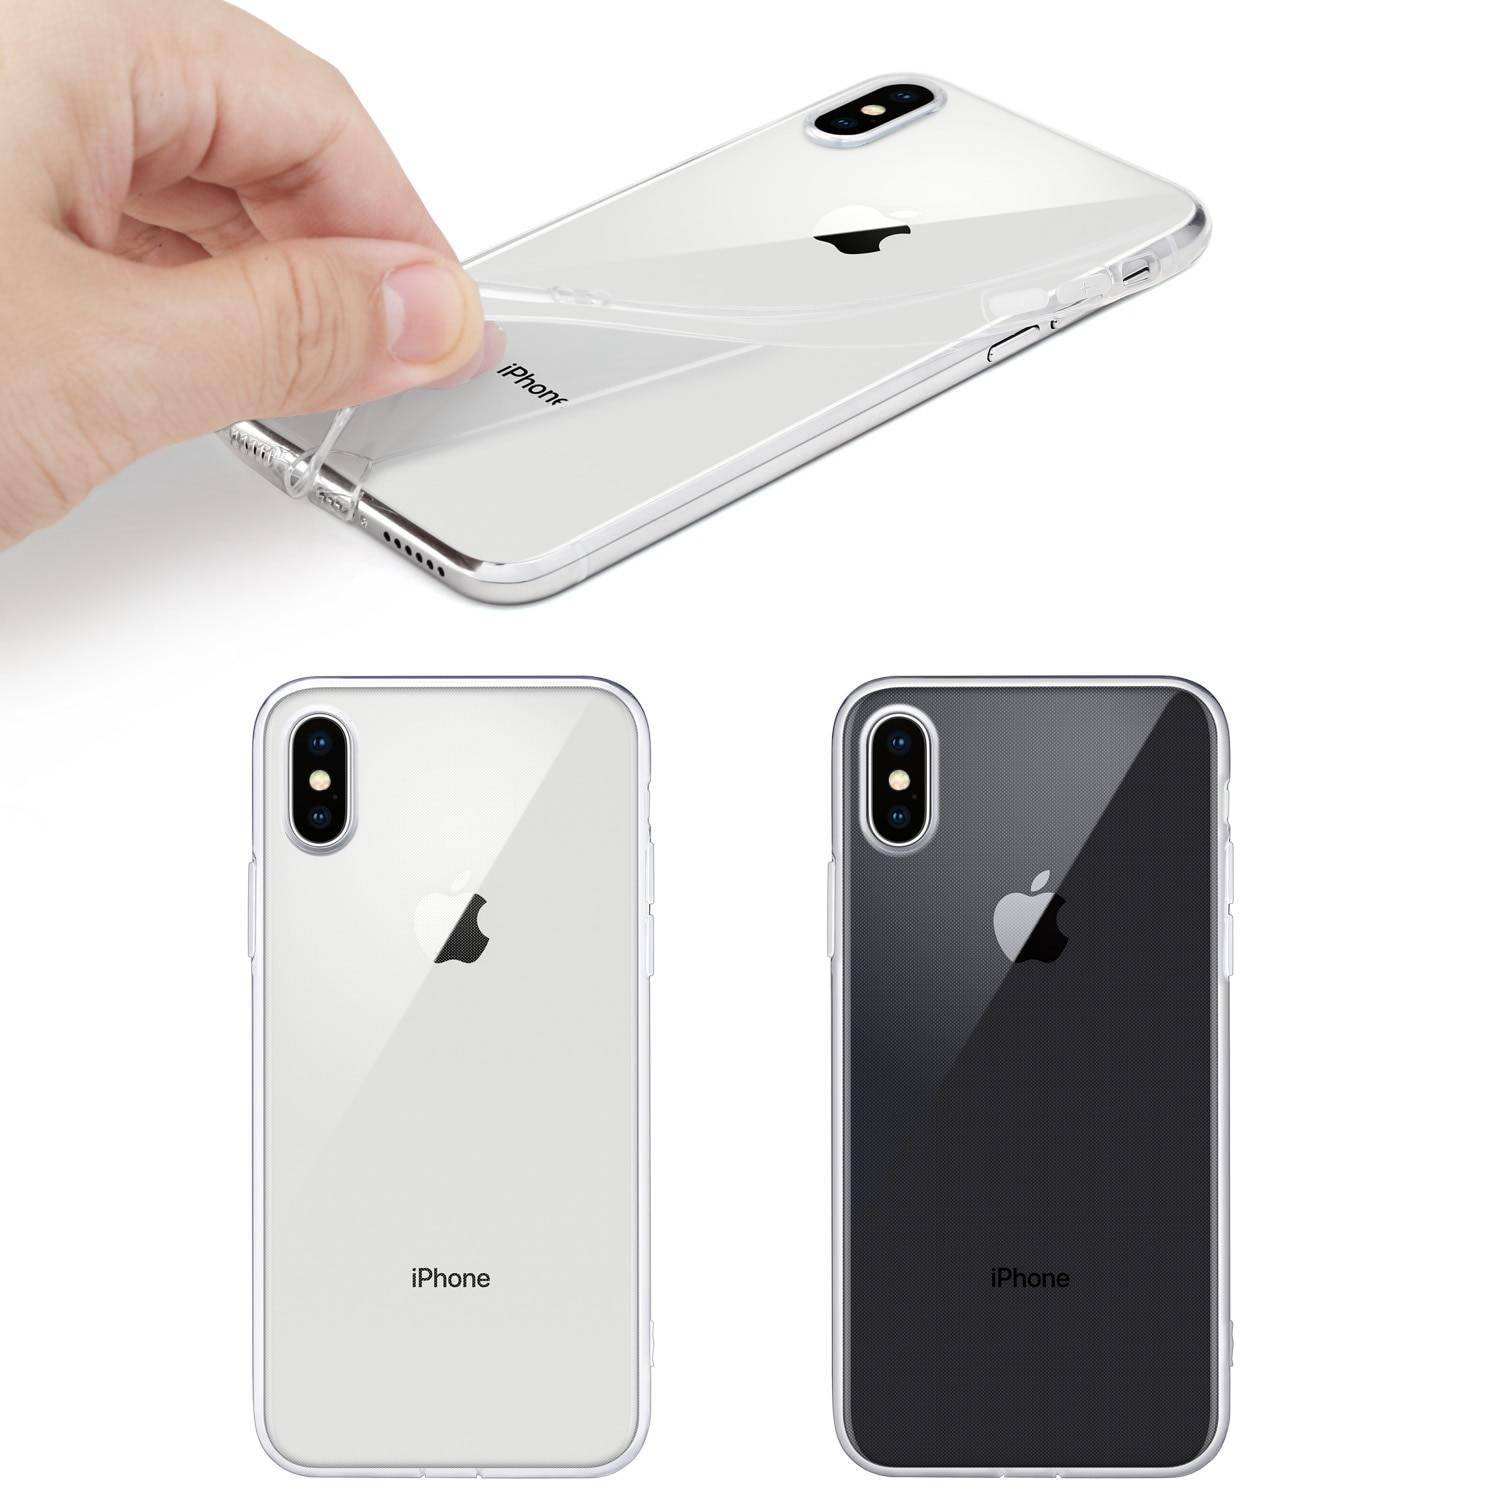 Transparent Phone Case for iPhone iPhone cases, wireless speakers, activity trackers & cool gadgets